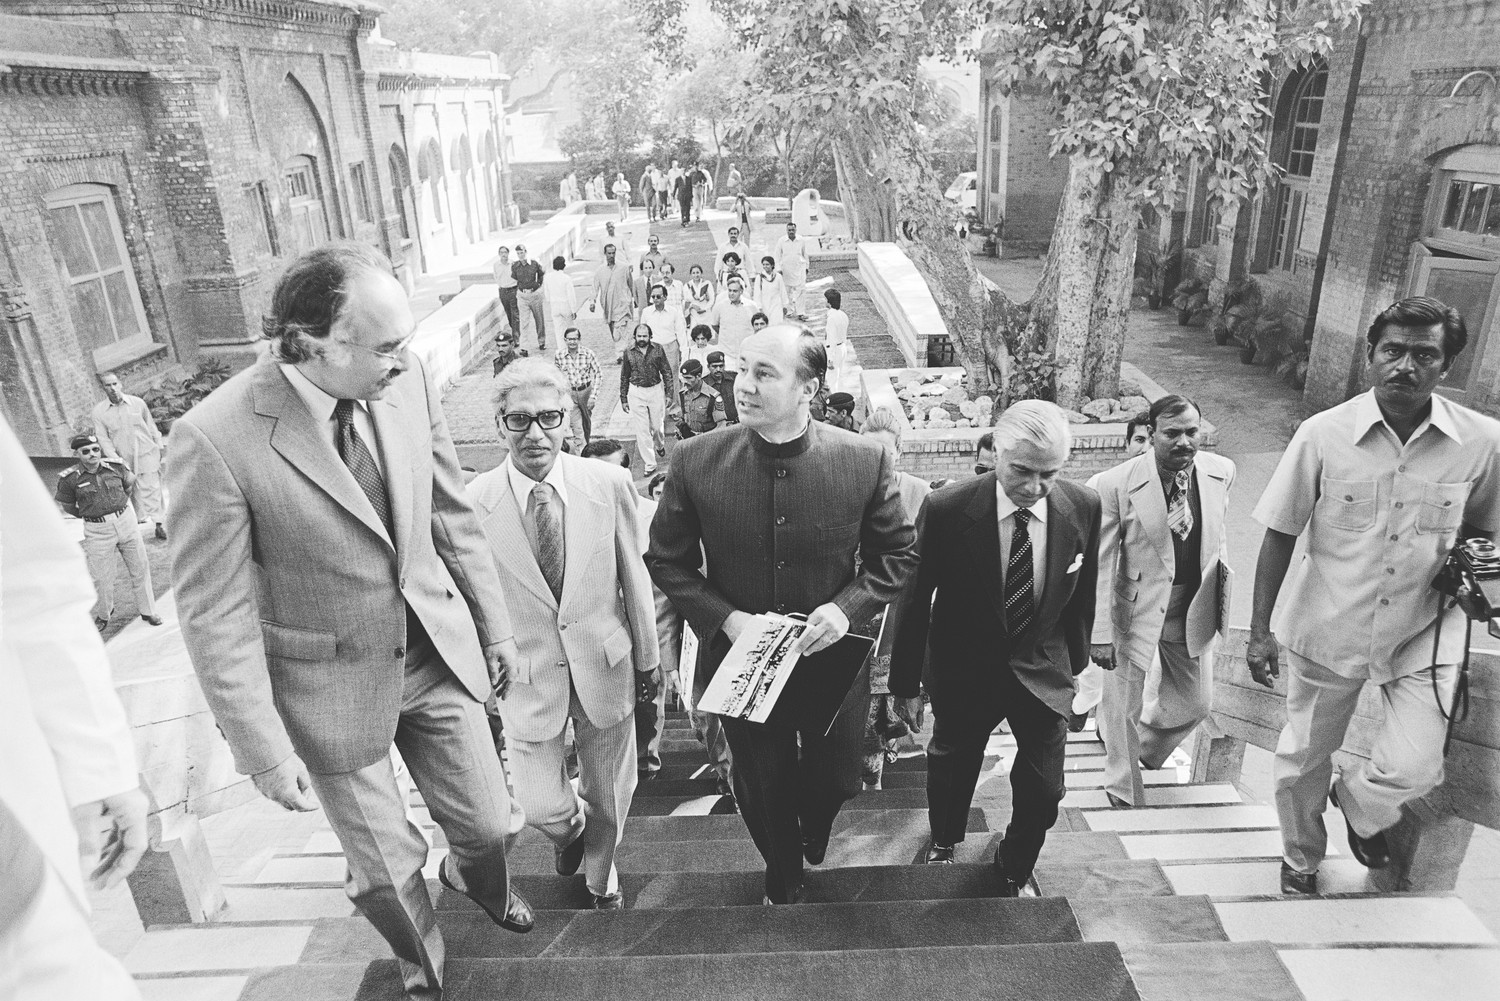 UNESCO's 5 Audio Recordings of His Highness the Aga Khan and Prince Sadruddin Are Now On Organization's New Digital Platform